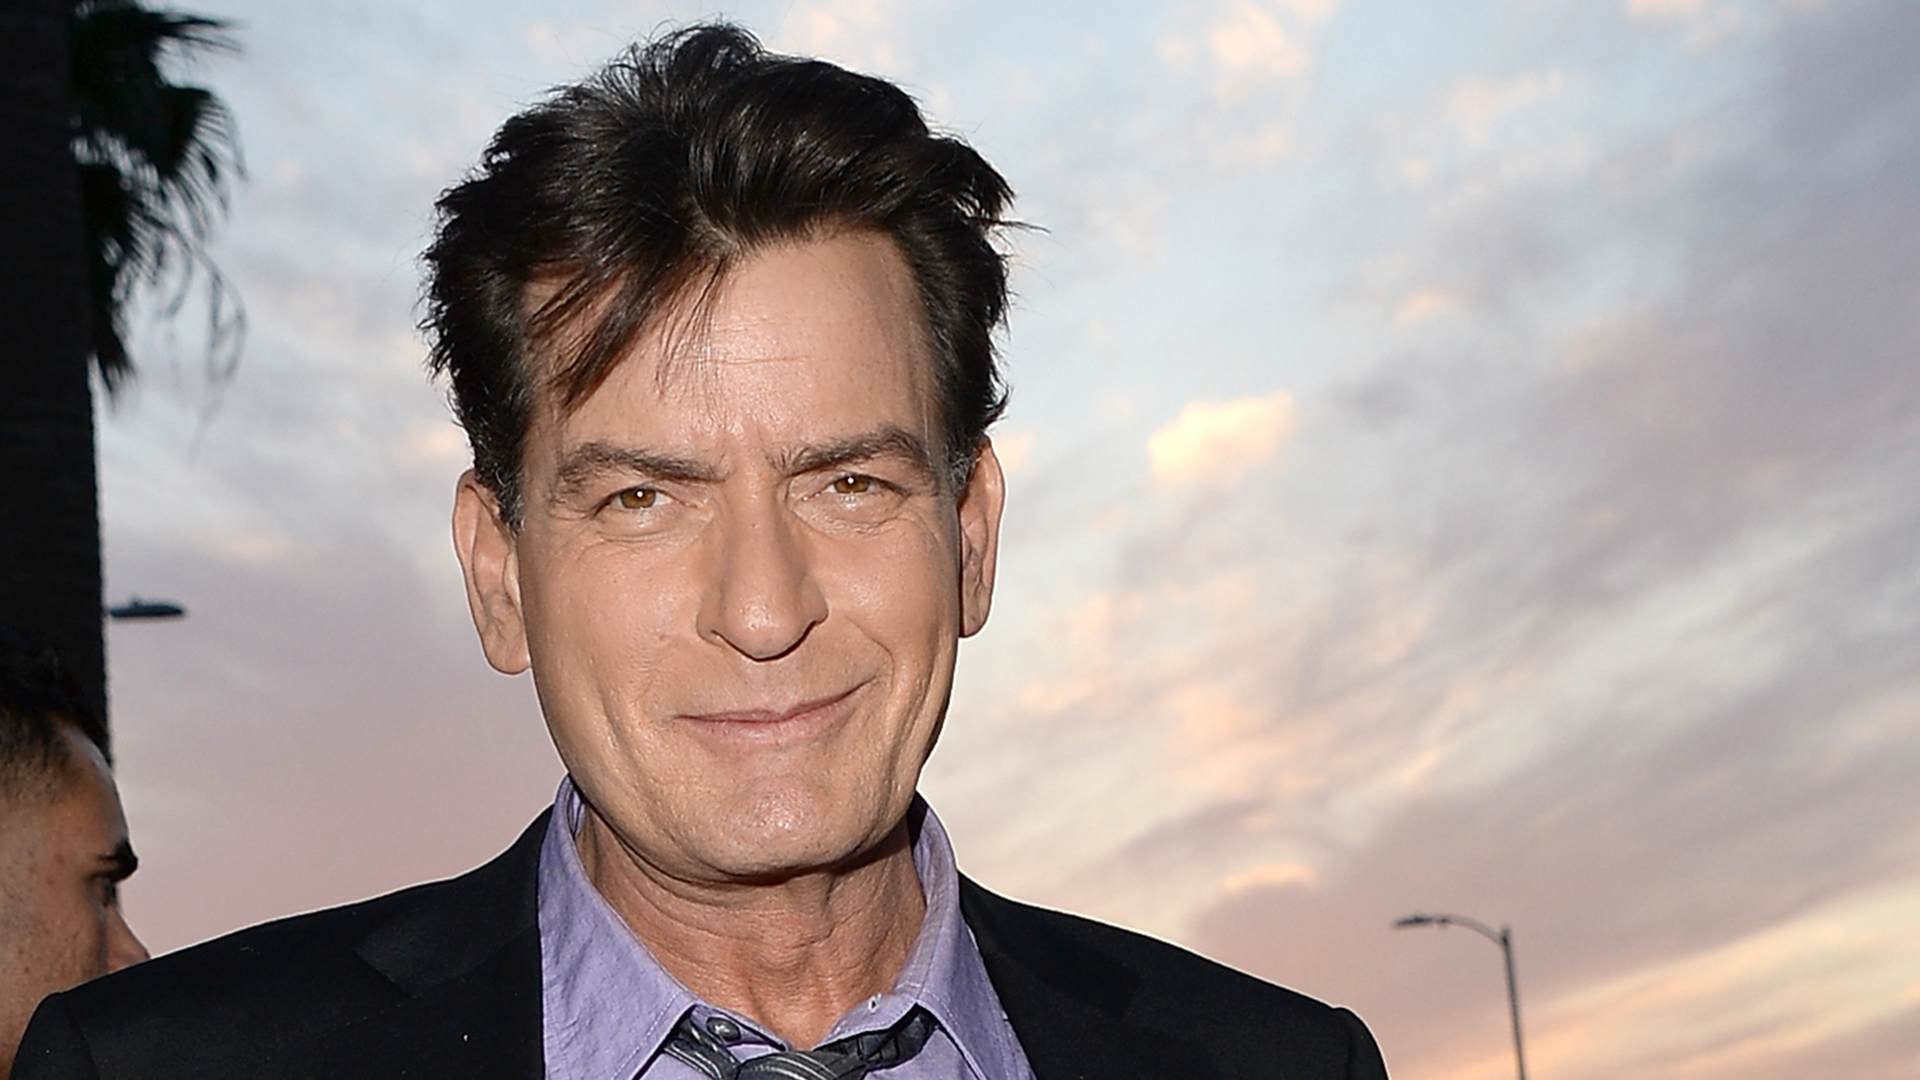 Charlie Sheen's real name is Carlos Irwin Estévez. (Photo: Archive)